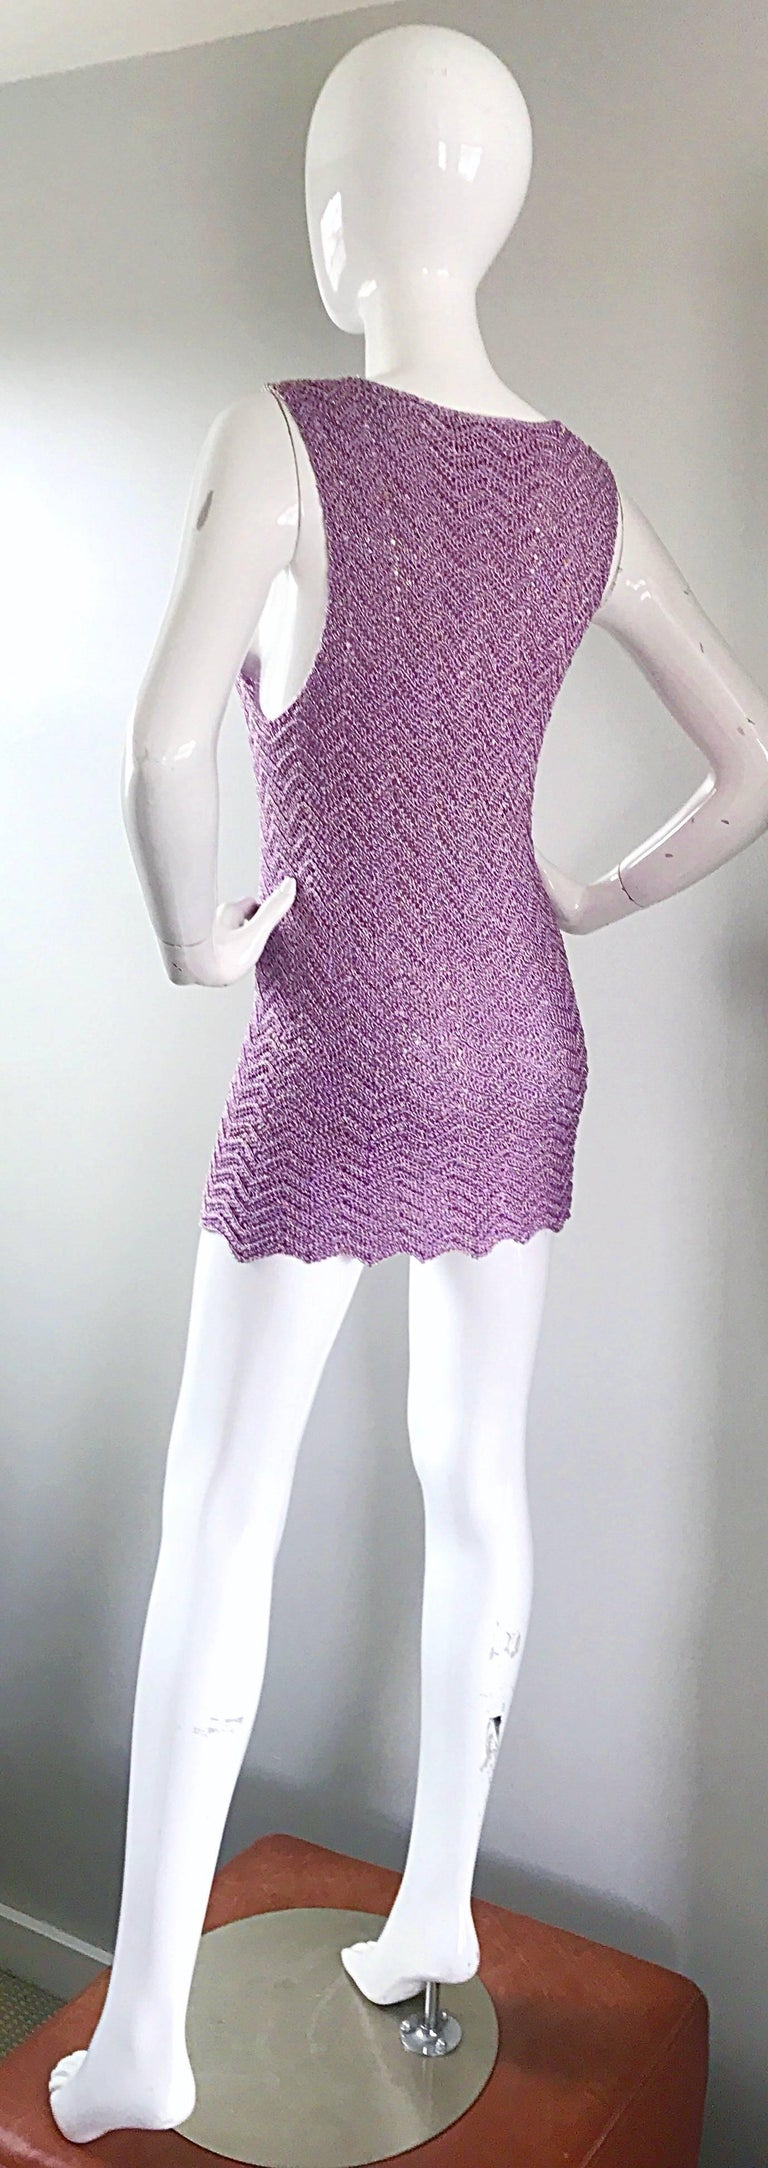 Vintage Isaac Mizrahi Bergdorf Goodman 1990s Purple + Gold Crochet Mini Dress  For Sale 3